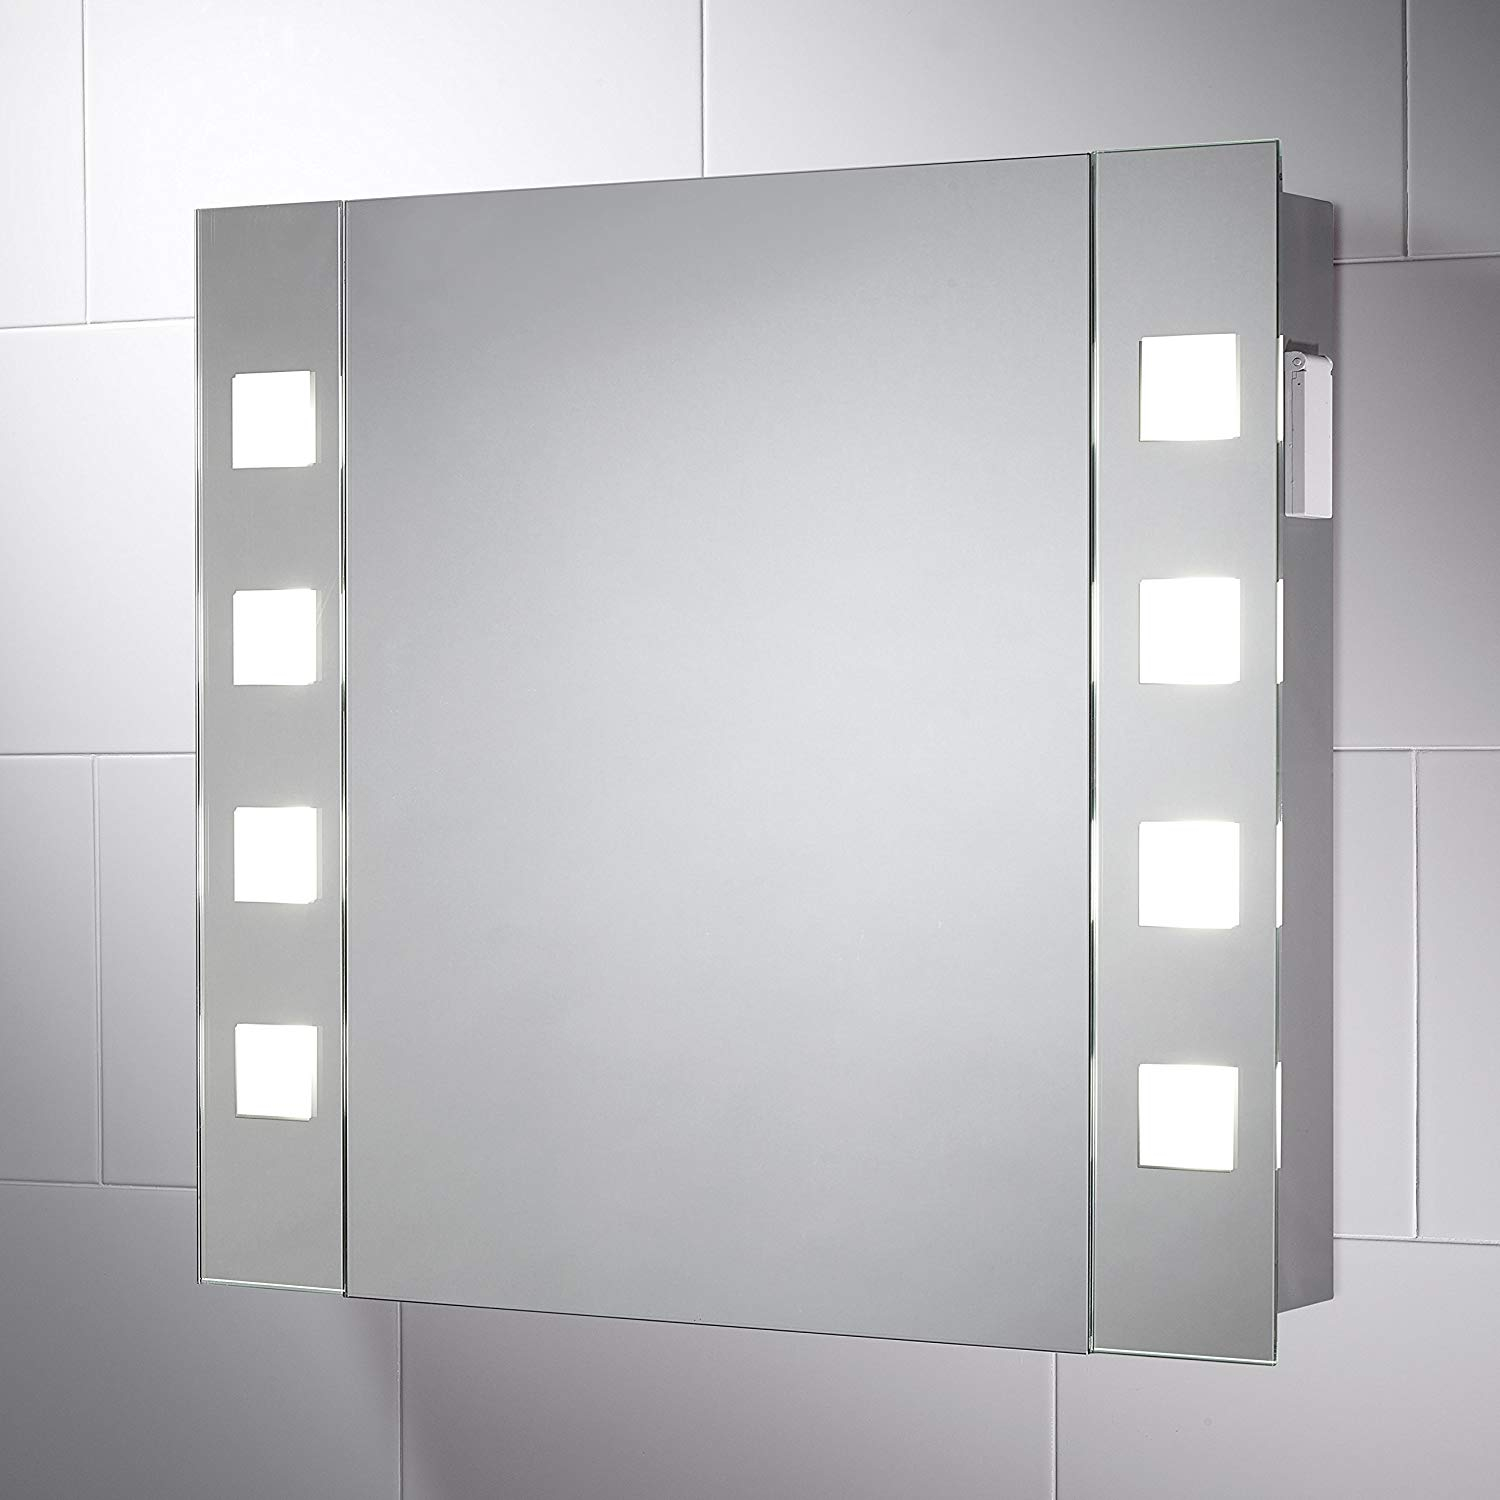 Kinsley led illuminated battery powered bathroom cabinet mirror hansgrohe showerselect thermostatic mixer for 2 outlets